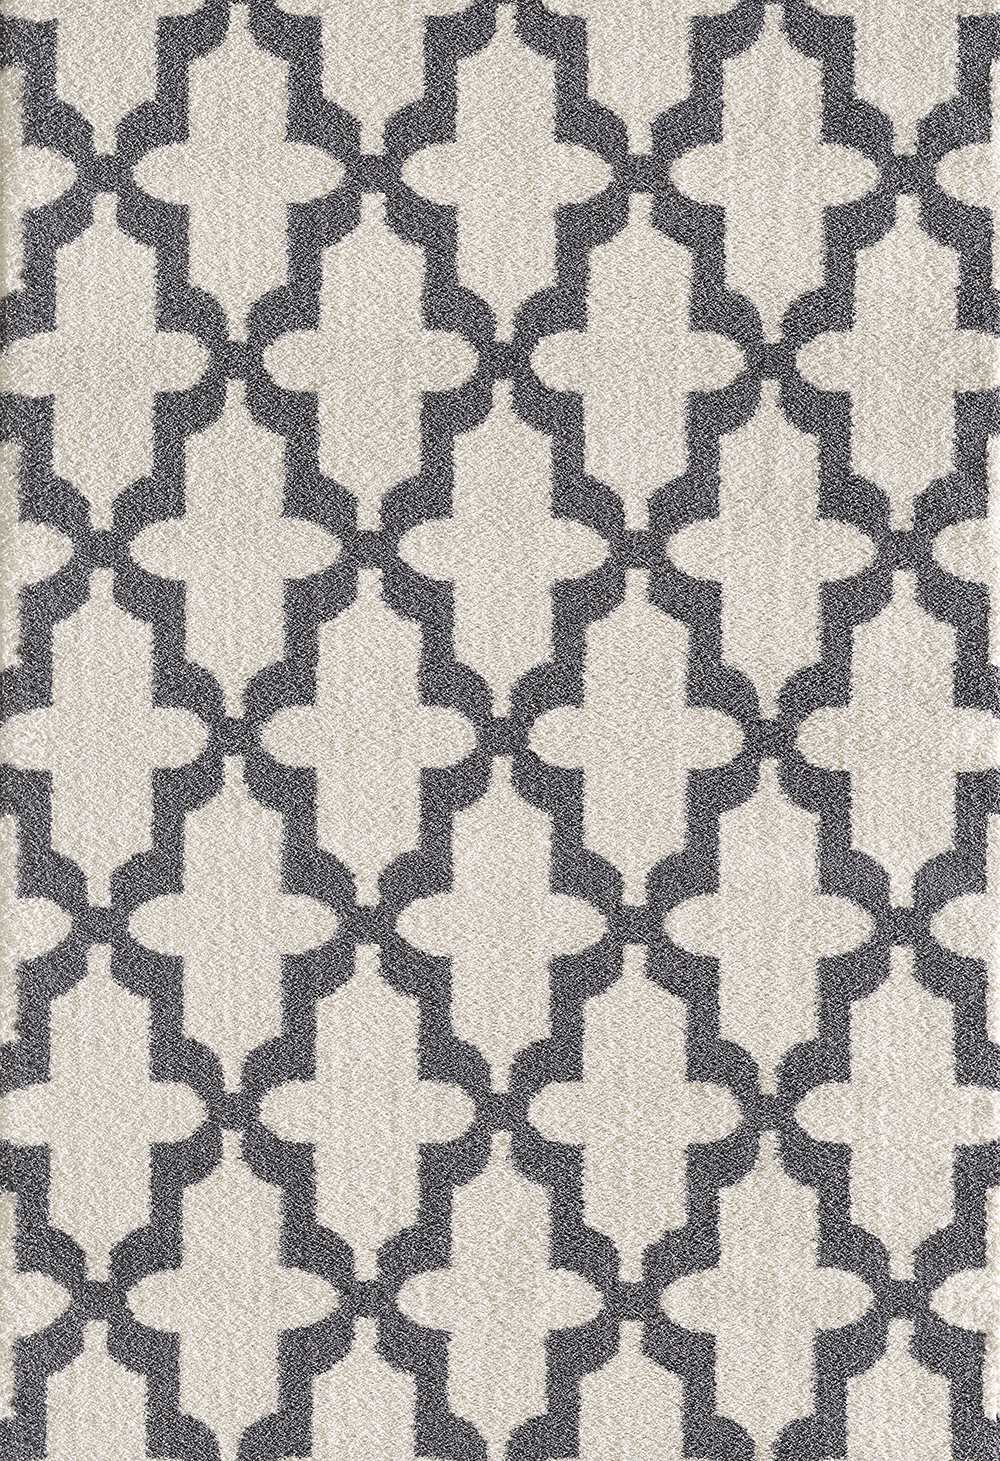 Dynamic Rugs Silky Shag Geometric White 5906 Area Rug